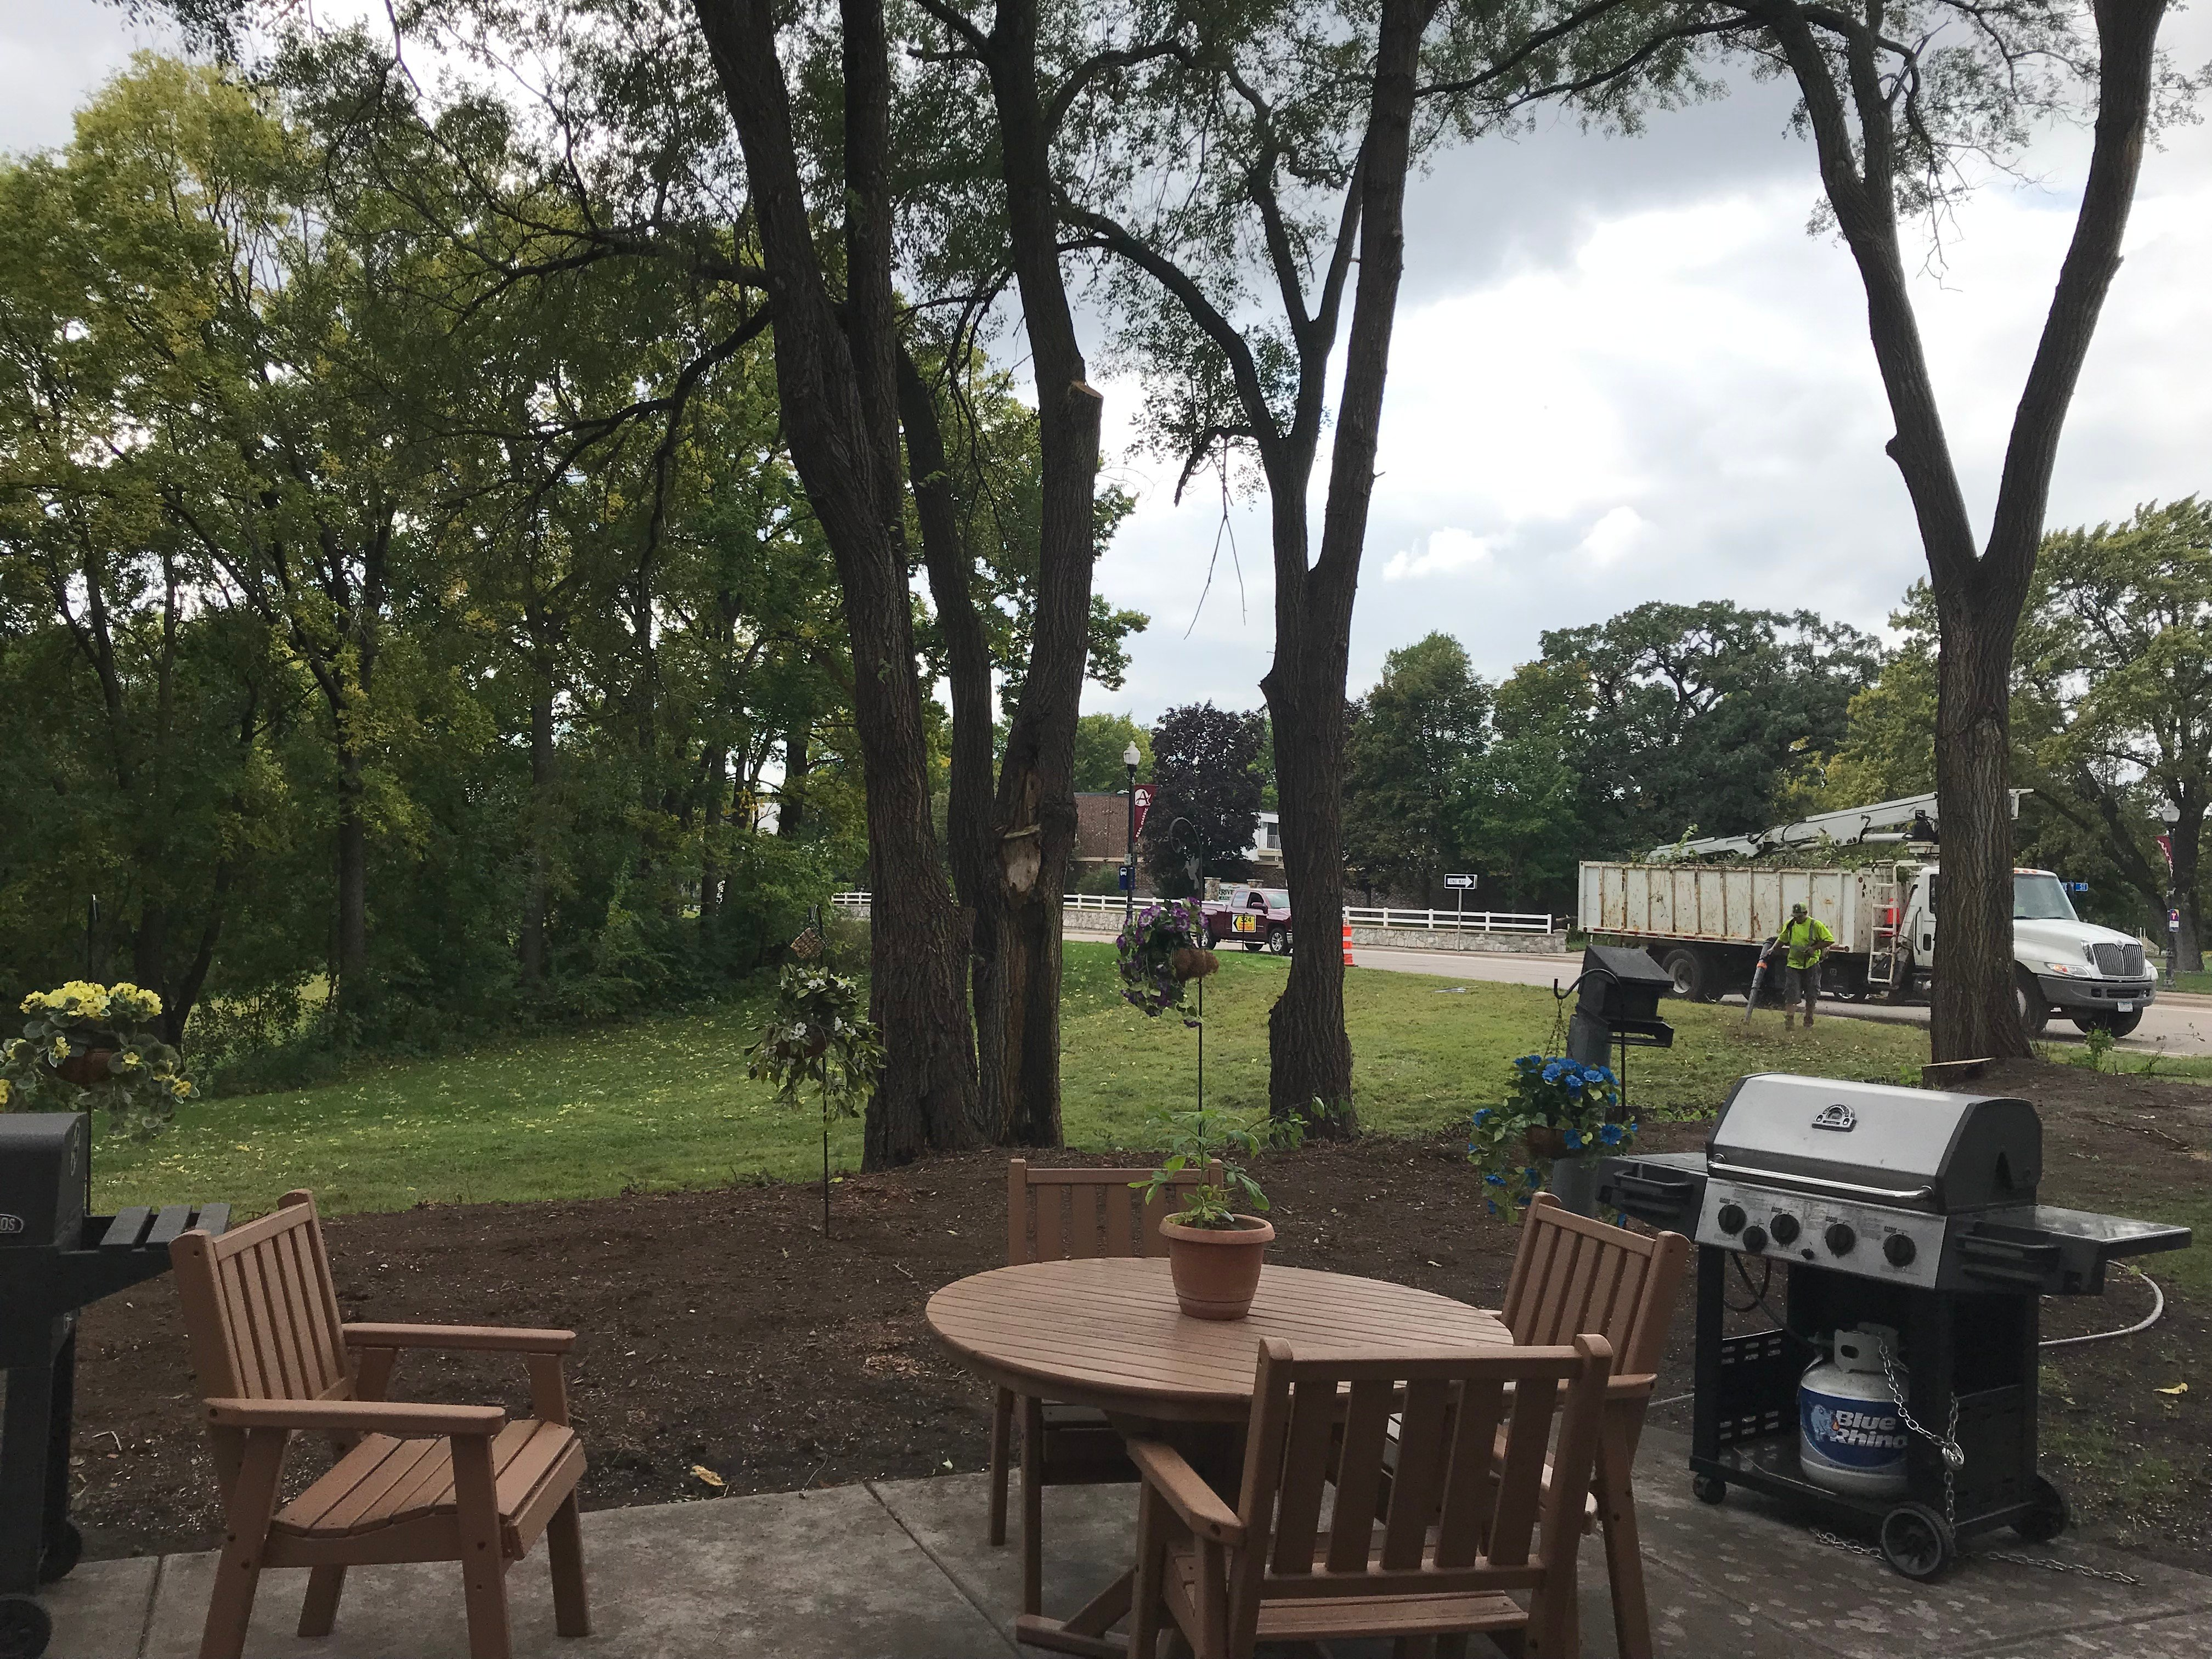 Residents lead the community's beautification project